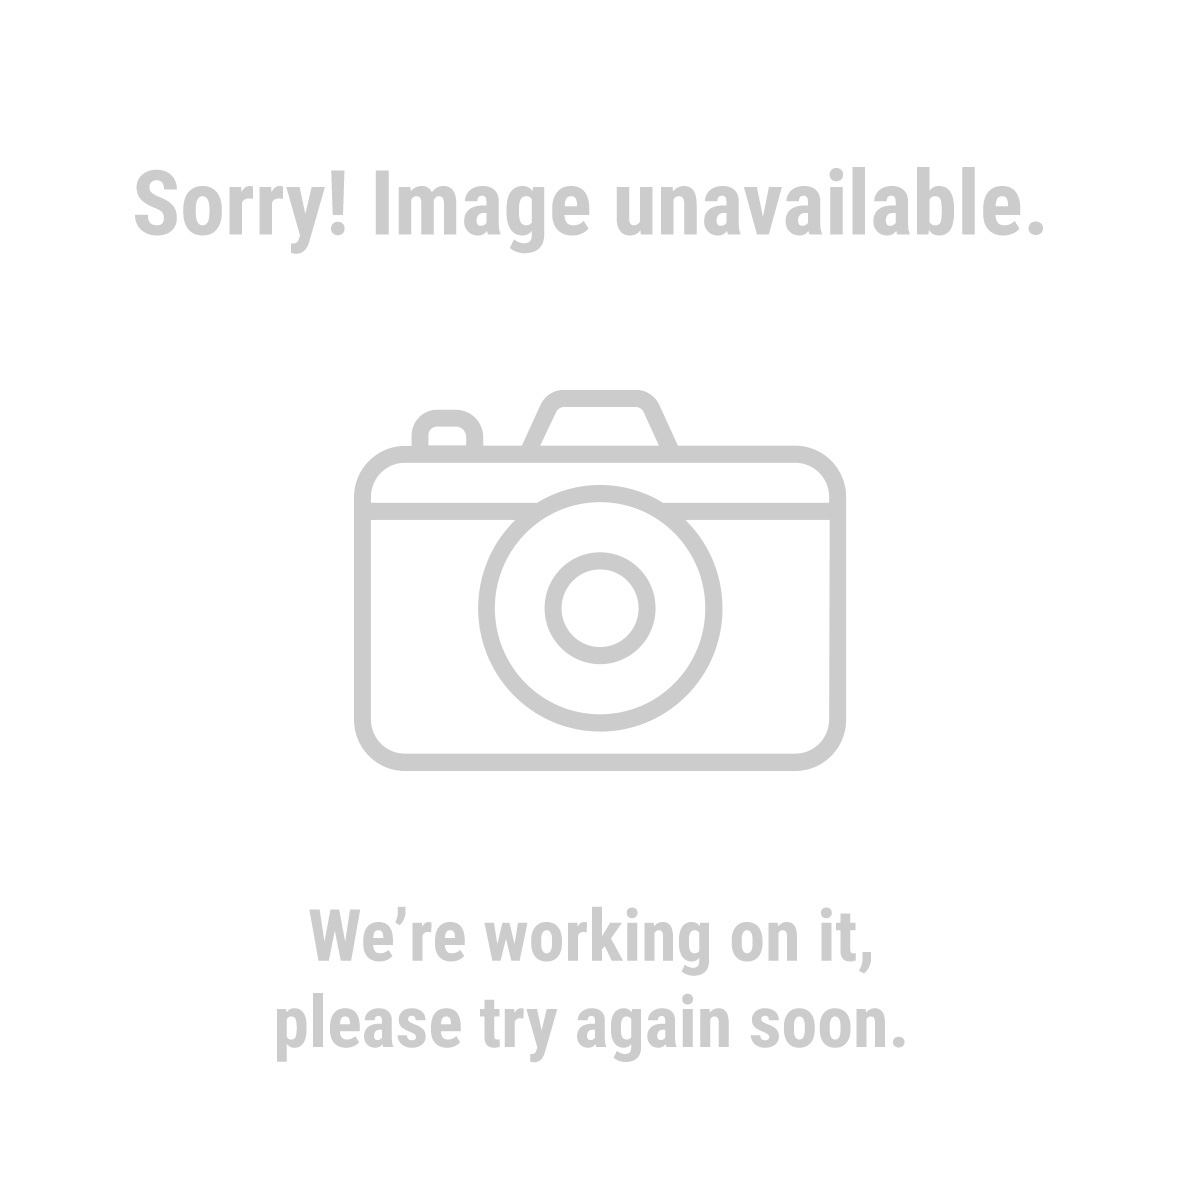 HFT® 47474 12 Piece Adjustable Tarpaulin Tie Down Cords